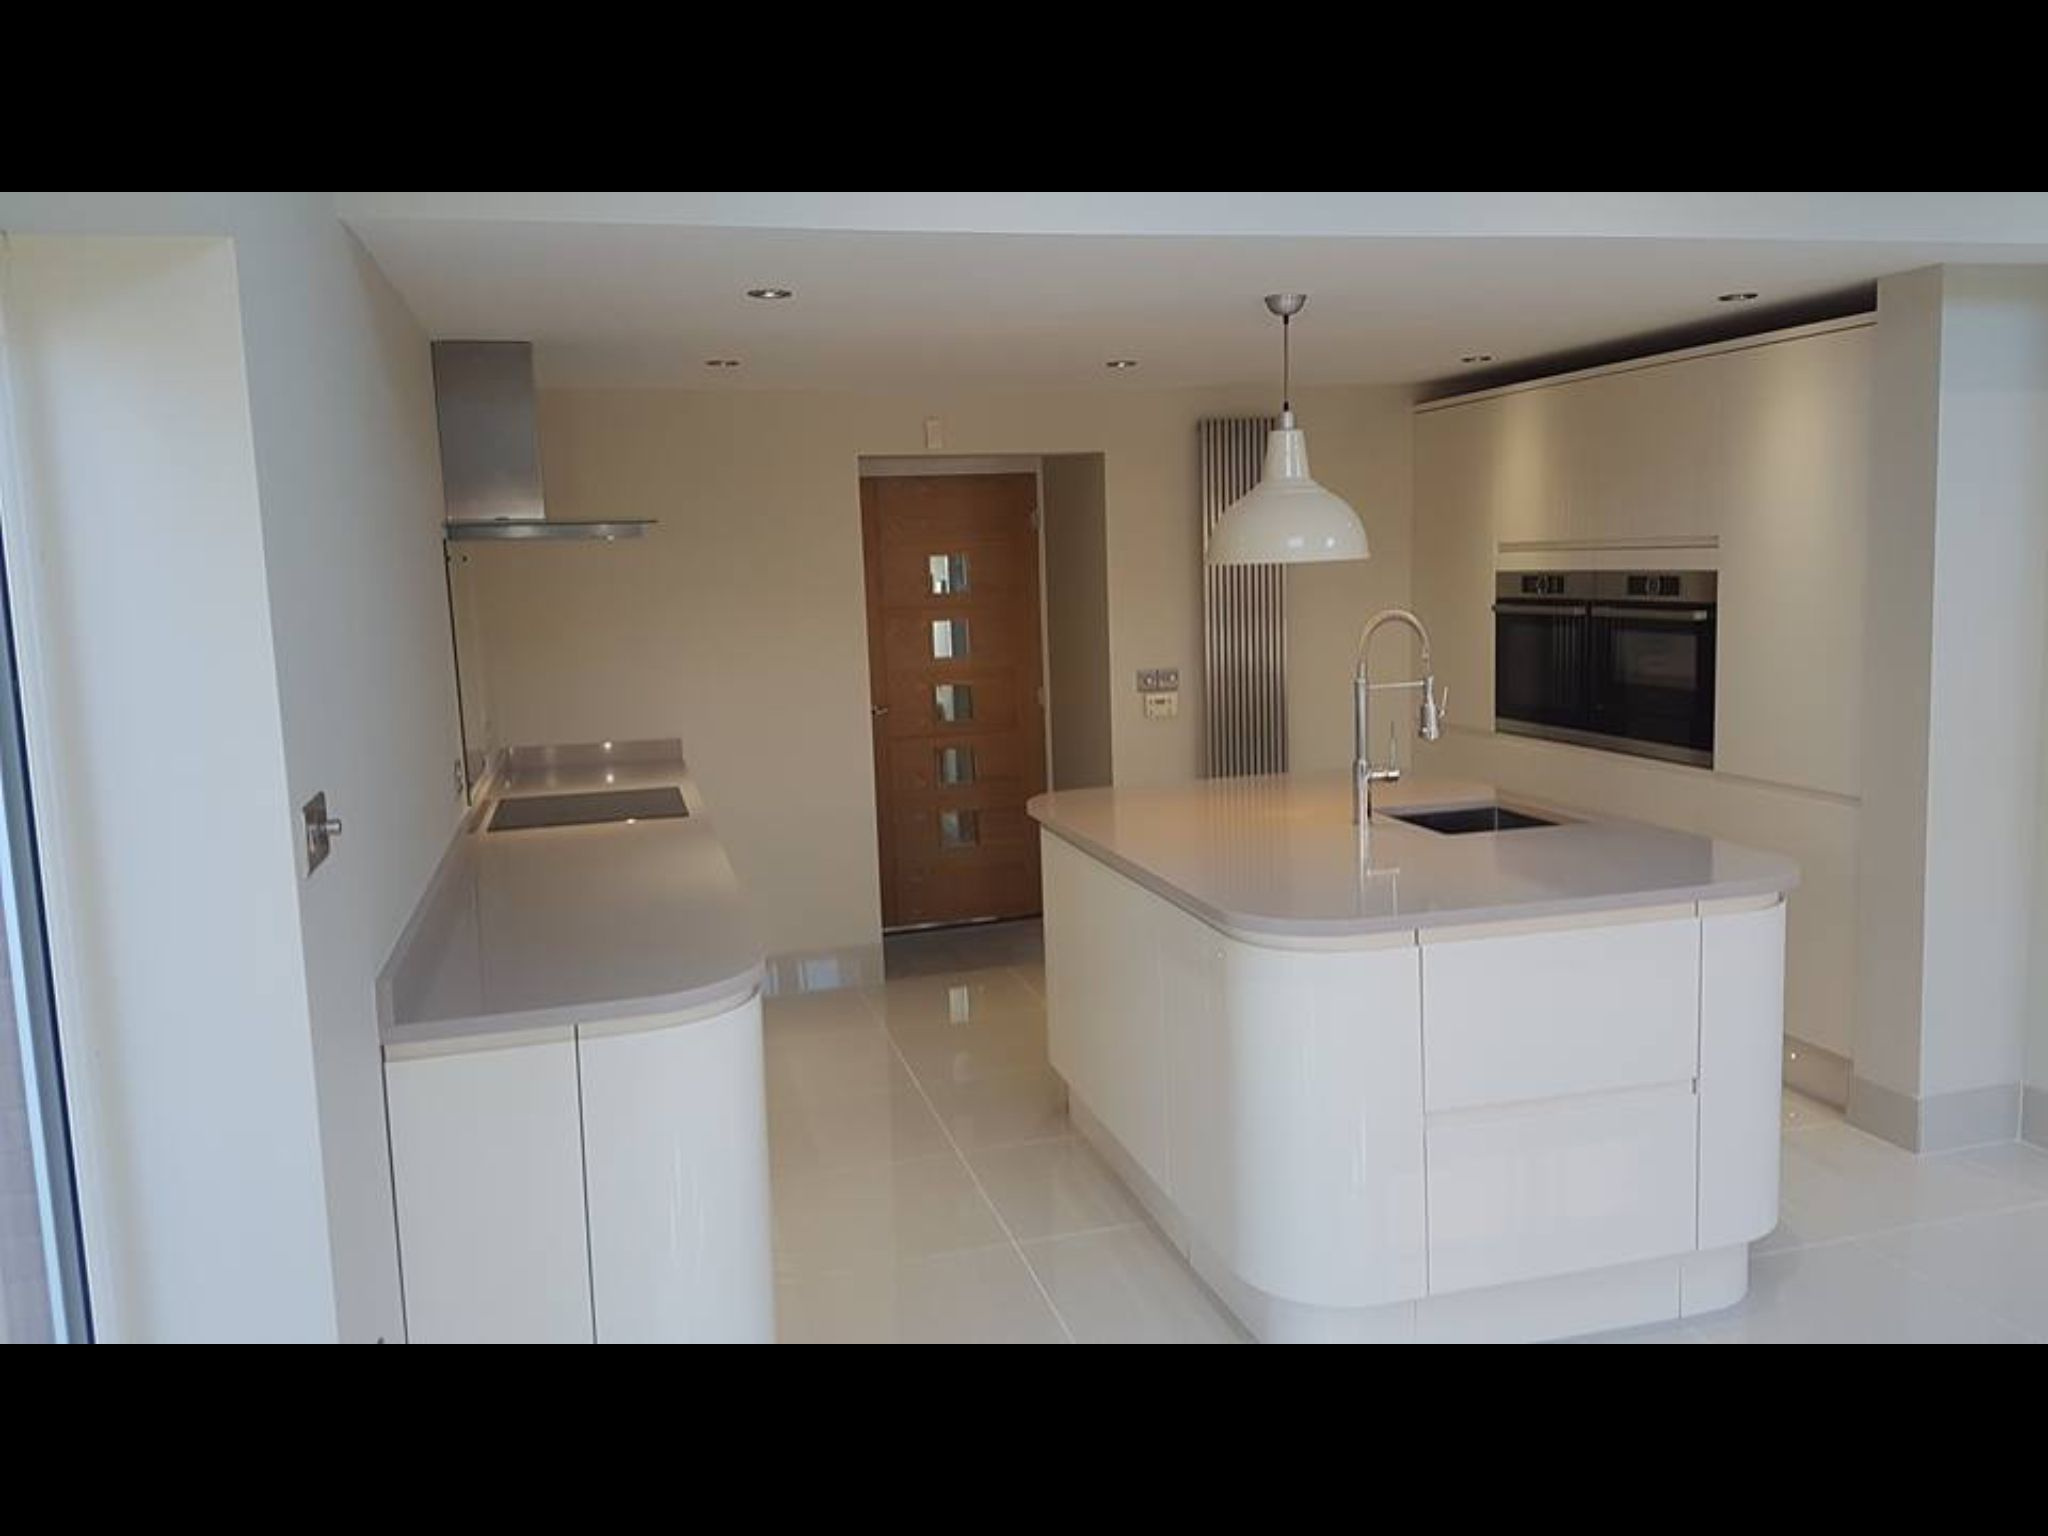 Gloss Kitchen Floor Tiles Clerkenwell Cream Gloss Howdens Ogaden Quartz Surface